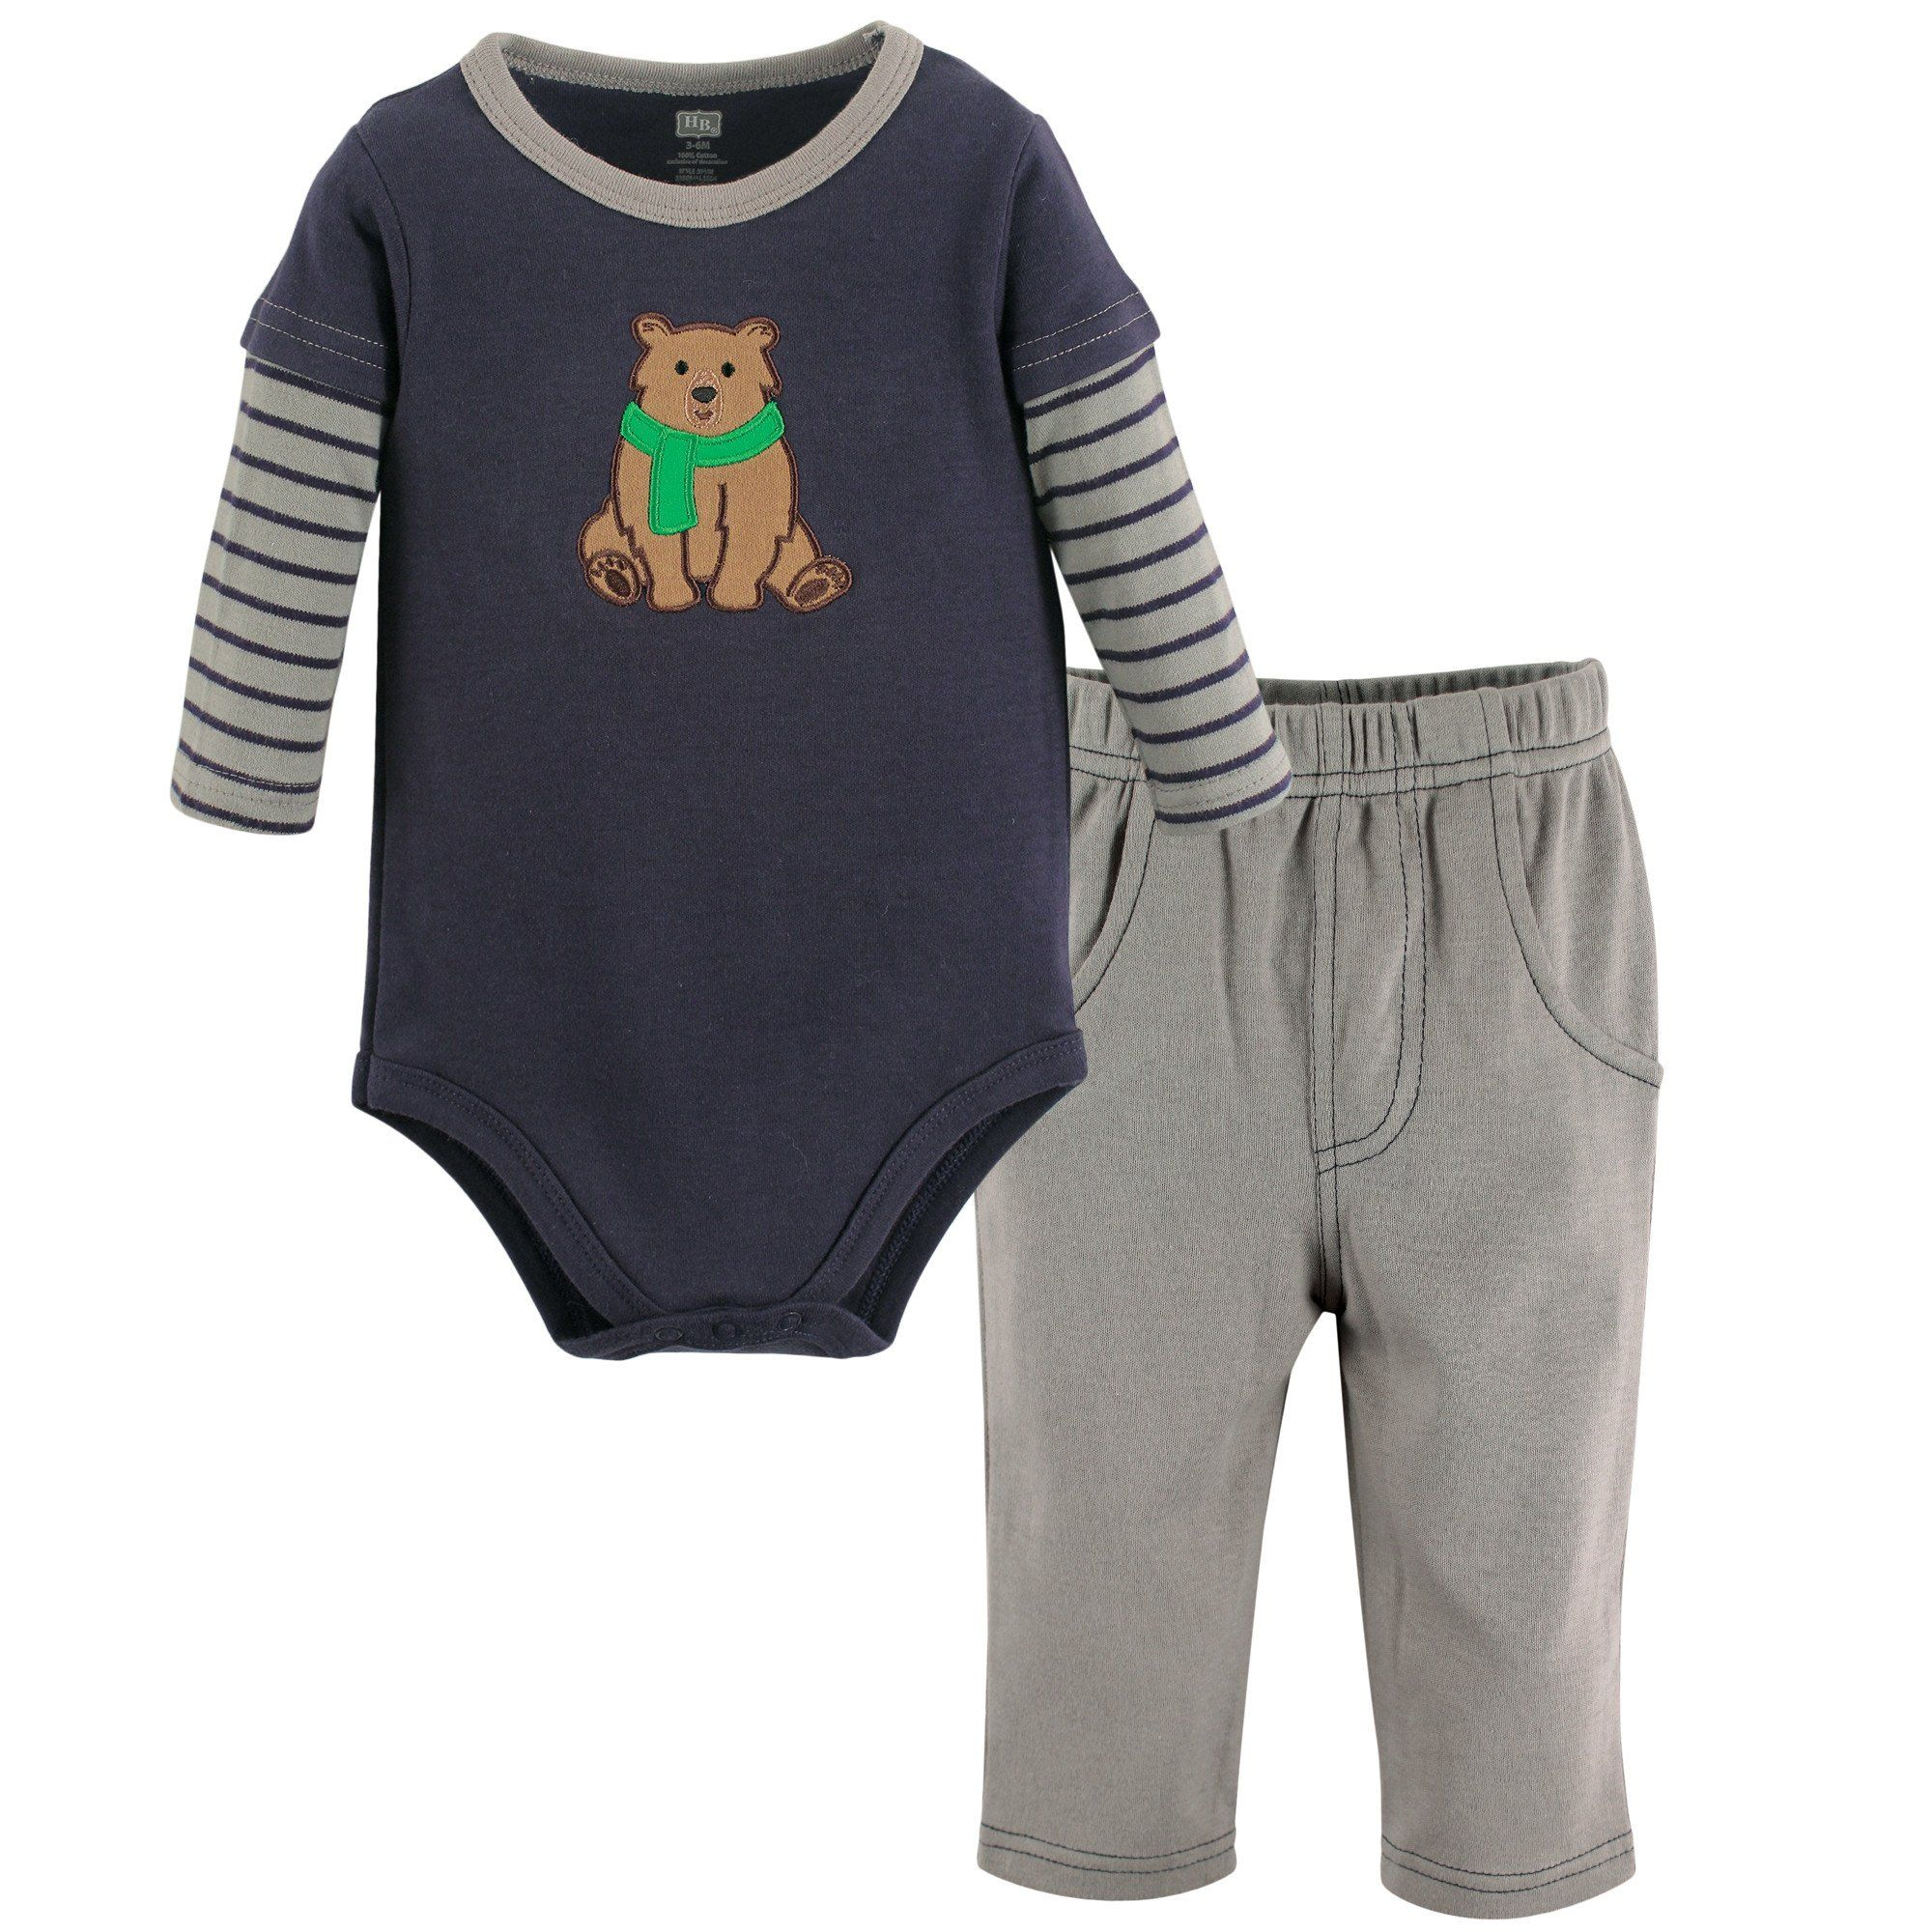 Hudson Baby Baby Infant Long Sleeve Bodysuit and Pant Set Bear 0 3